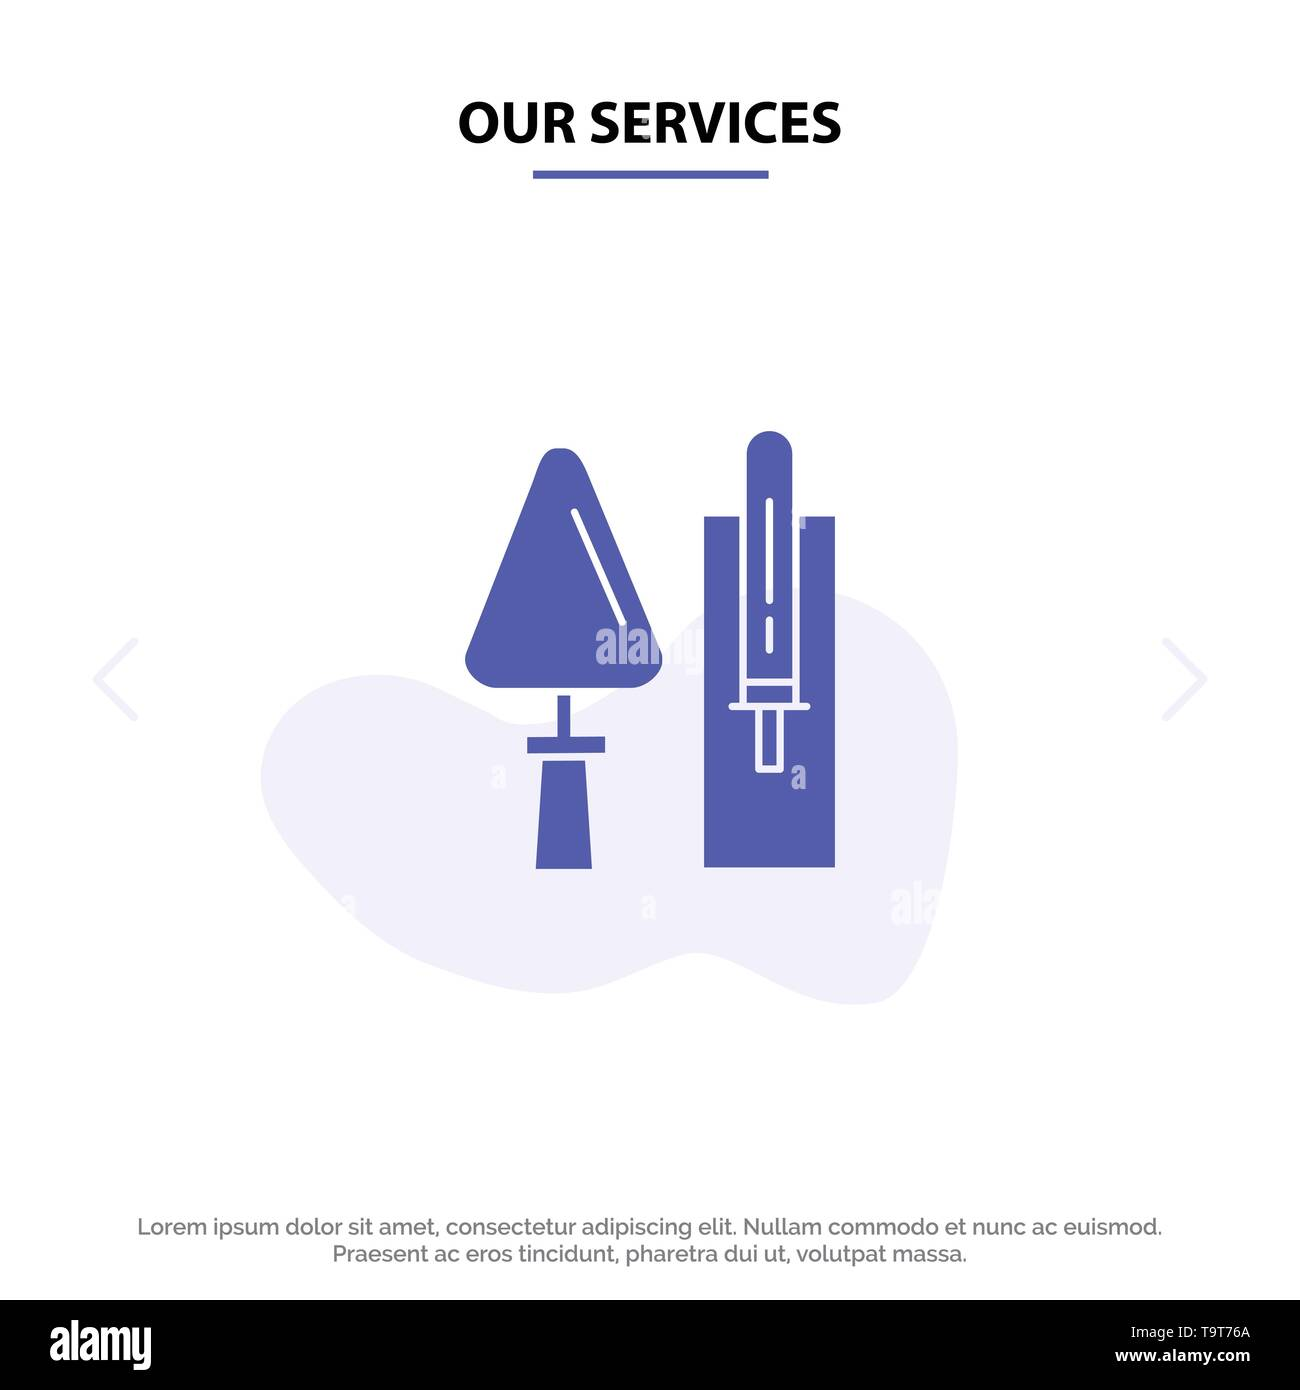 Our Services Trowel, Brickwork, Construction, Masonry, Tool Solid Glyph Icon Web card Template - Stock Image